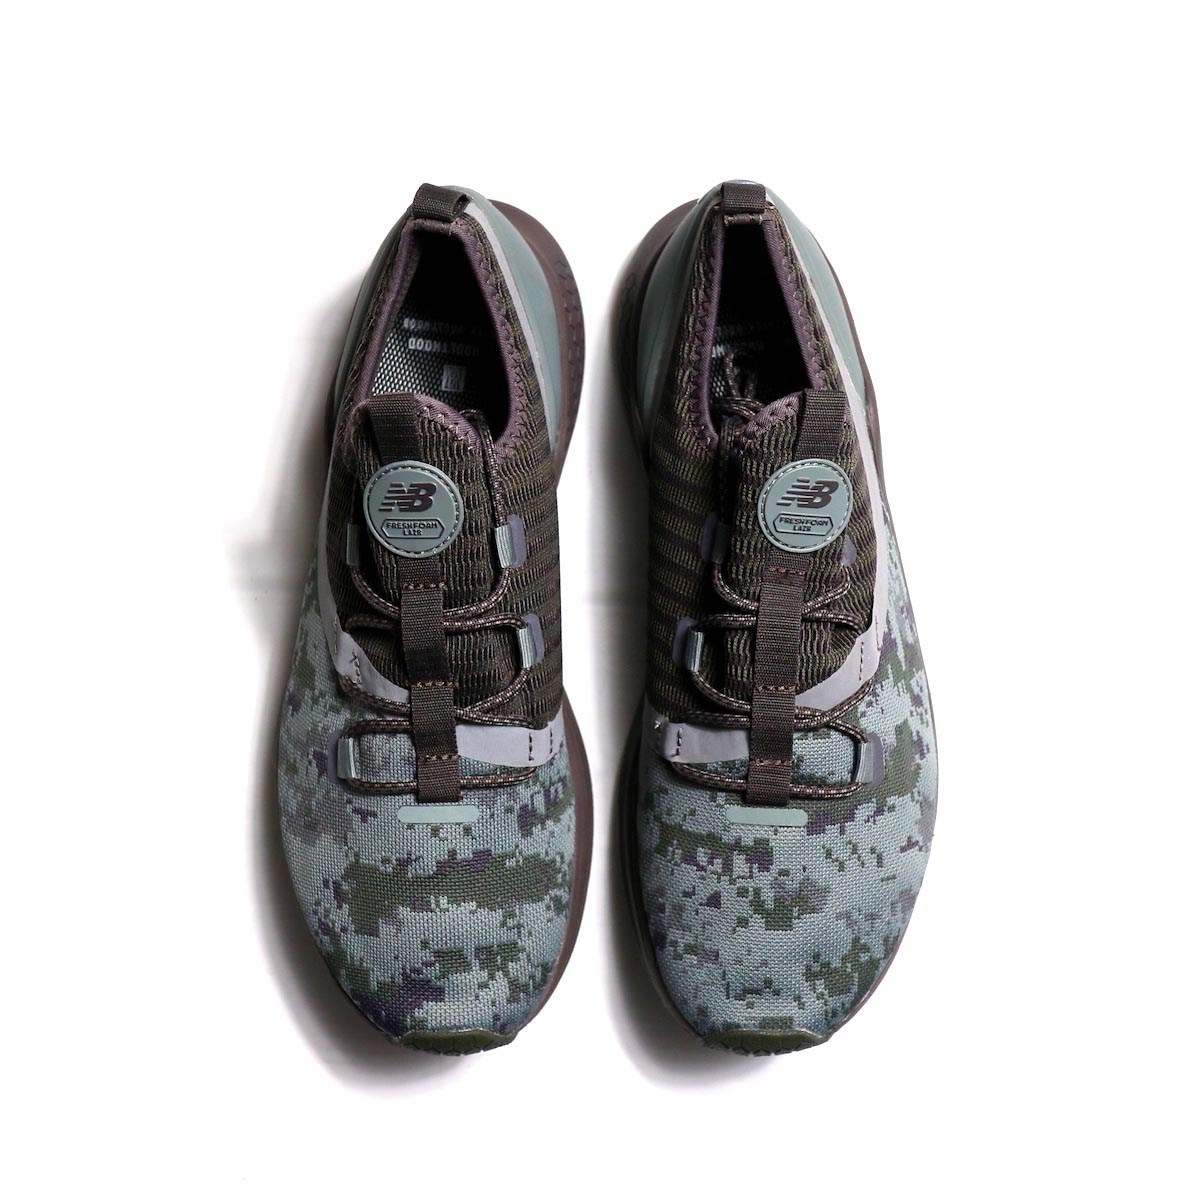 N.HOOLYWOOD / 981-SE01 pieces N.H TPES × New Balance